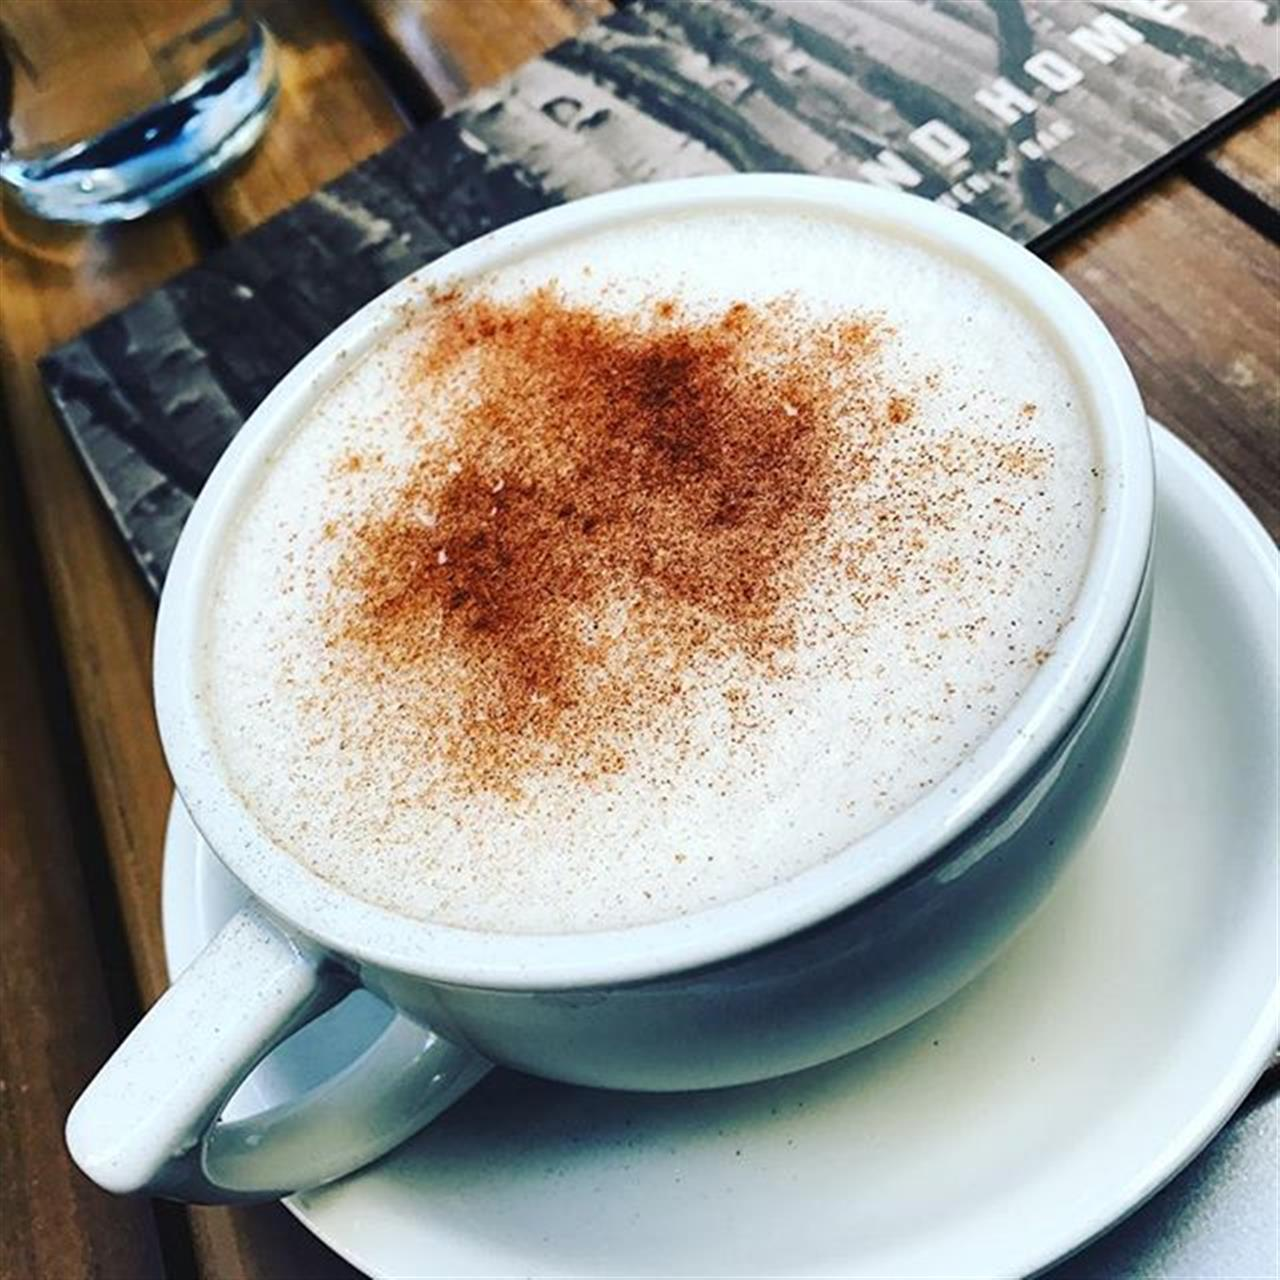 Have you tried the amazing chai lattes at the @jwmarriottden in @cherrycreeknorth ? #sundayfunday #brunch #brunchplease #chai #chailatte #cherrycreeknorth #goexploredenver #leadingrelocal